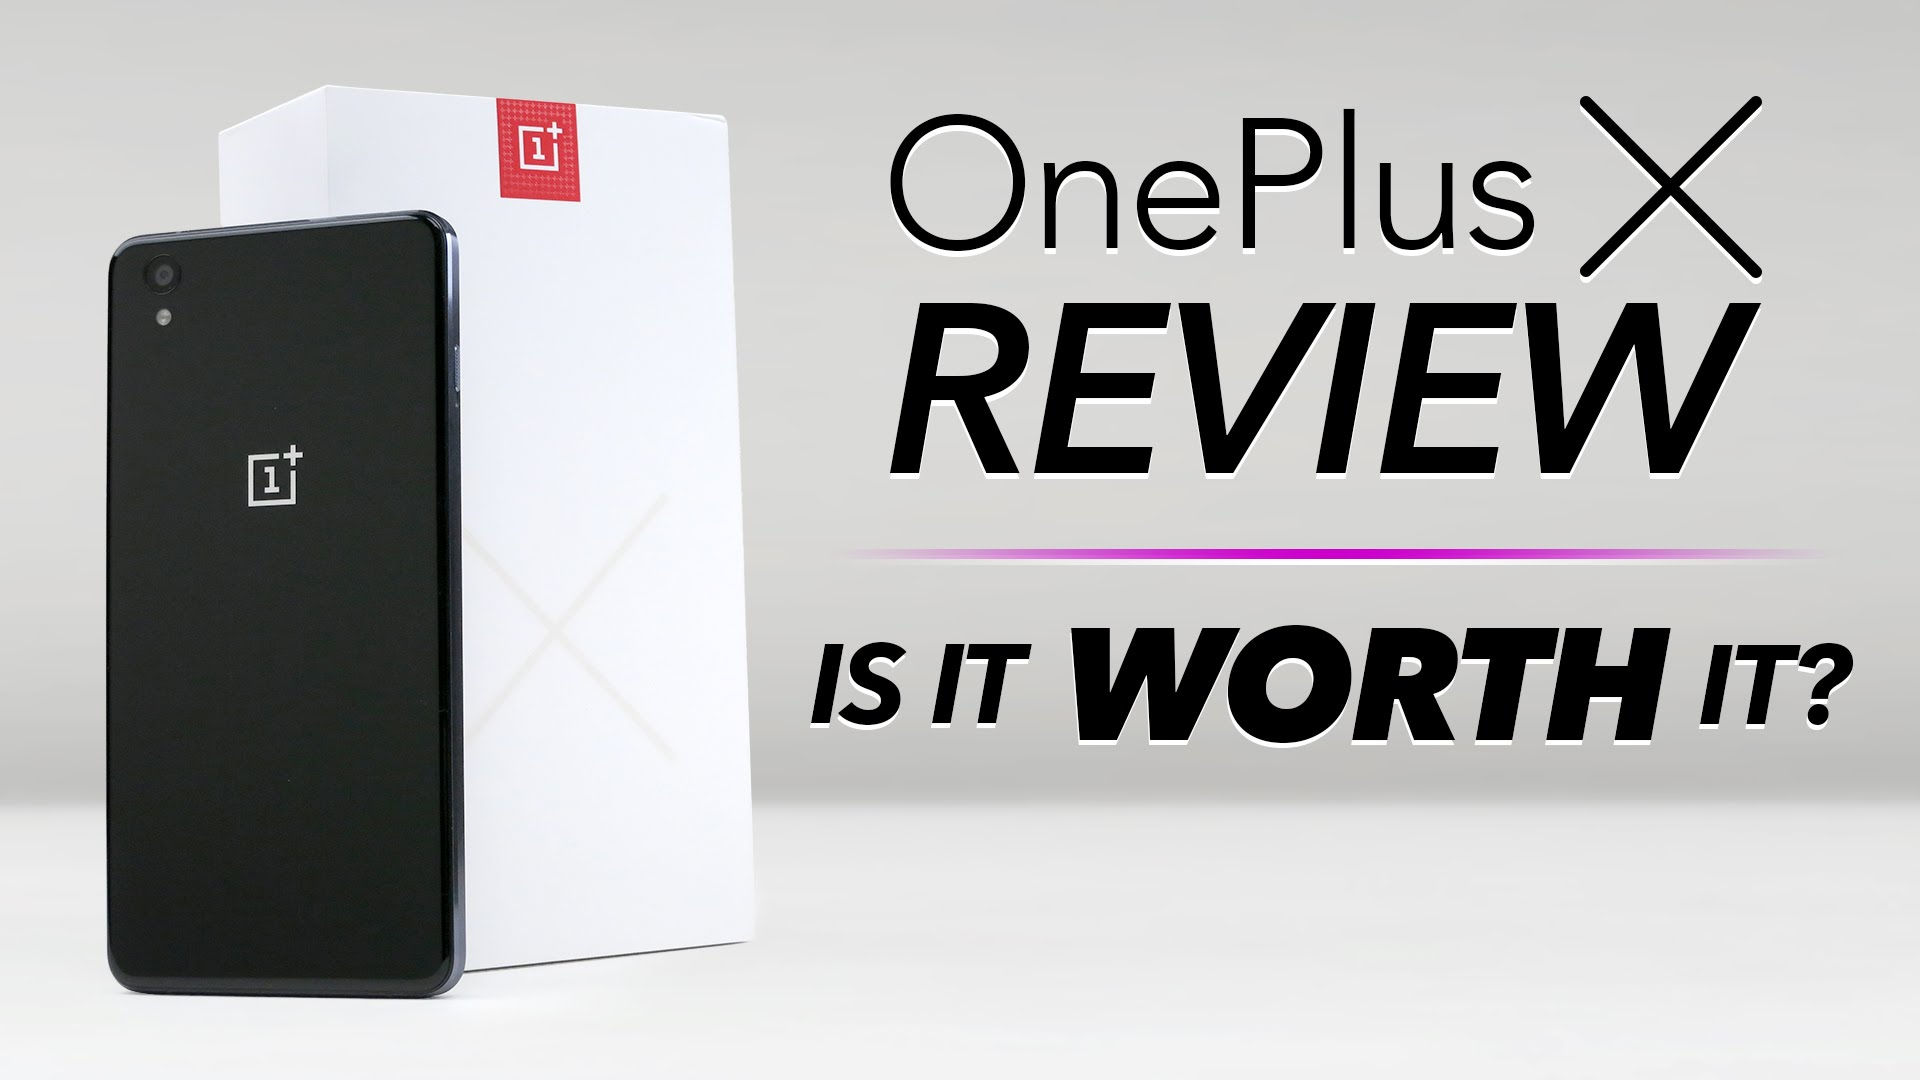 OnePlus X Review: Is It Worth It?